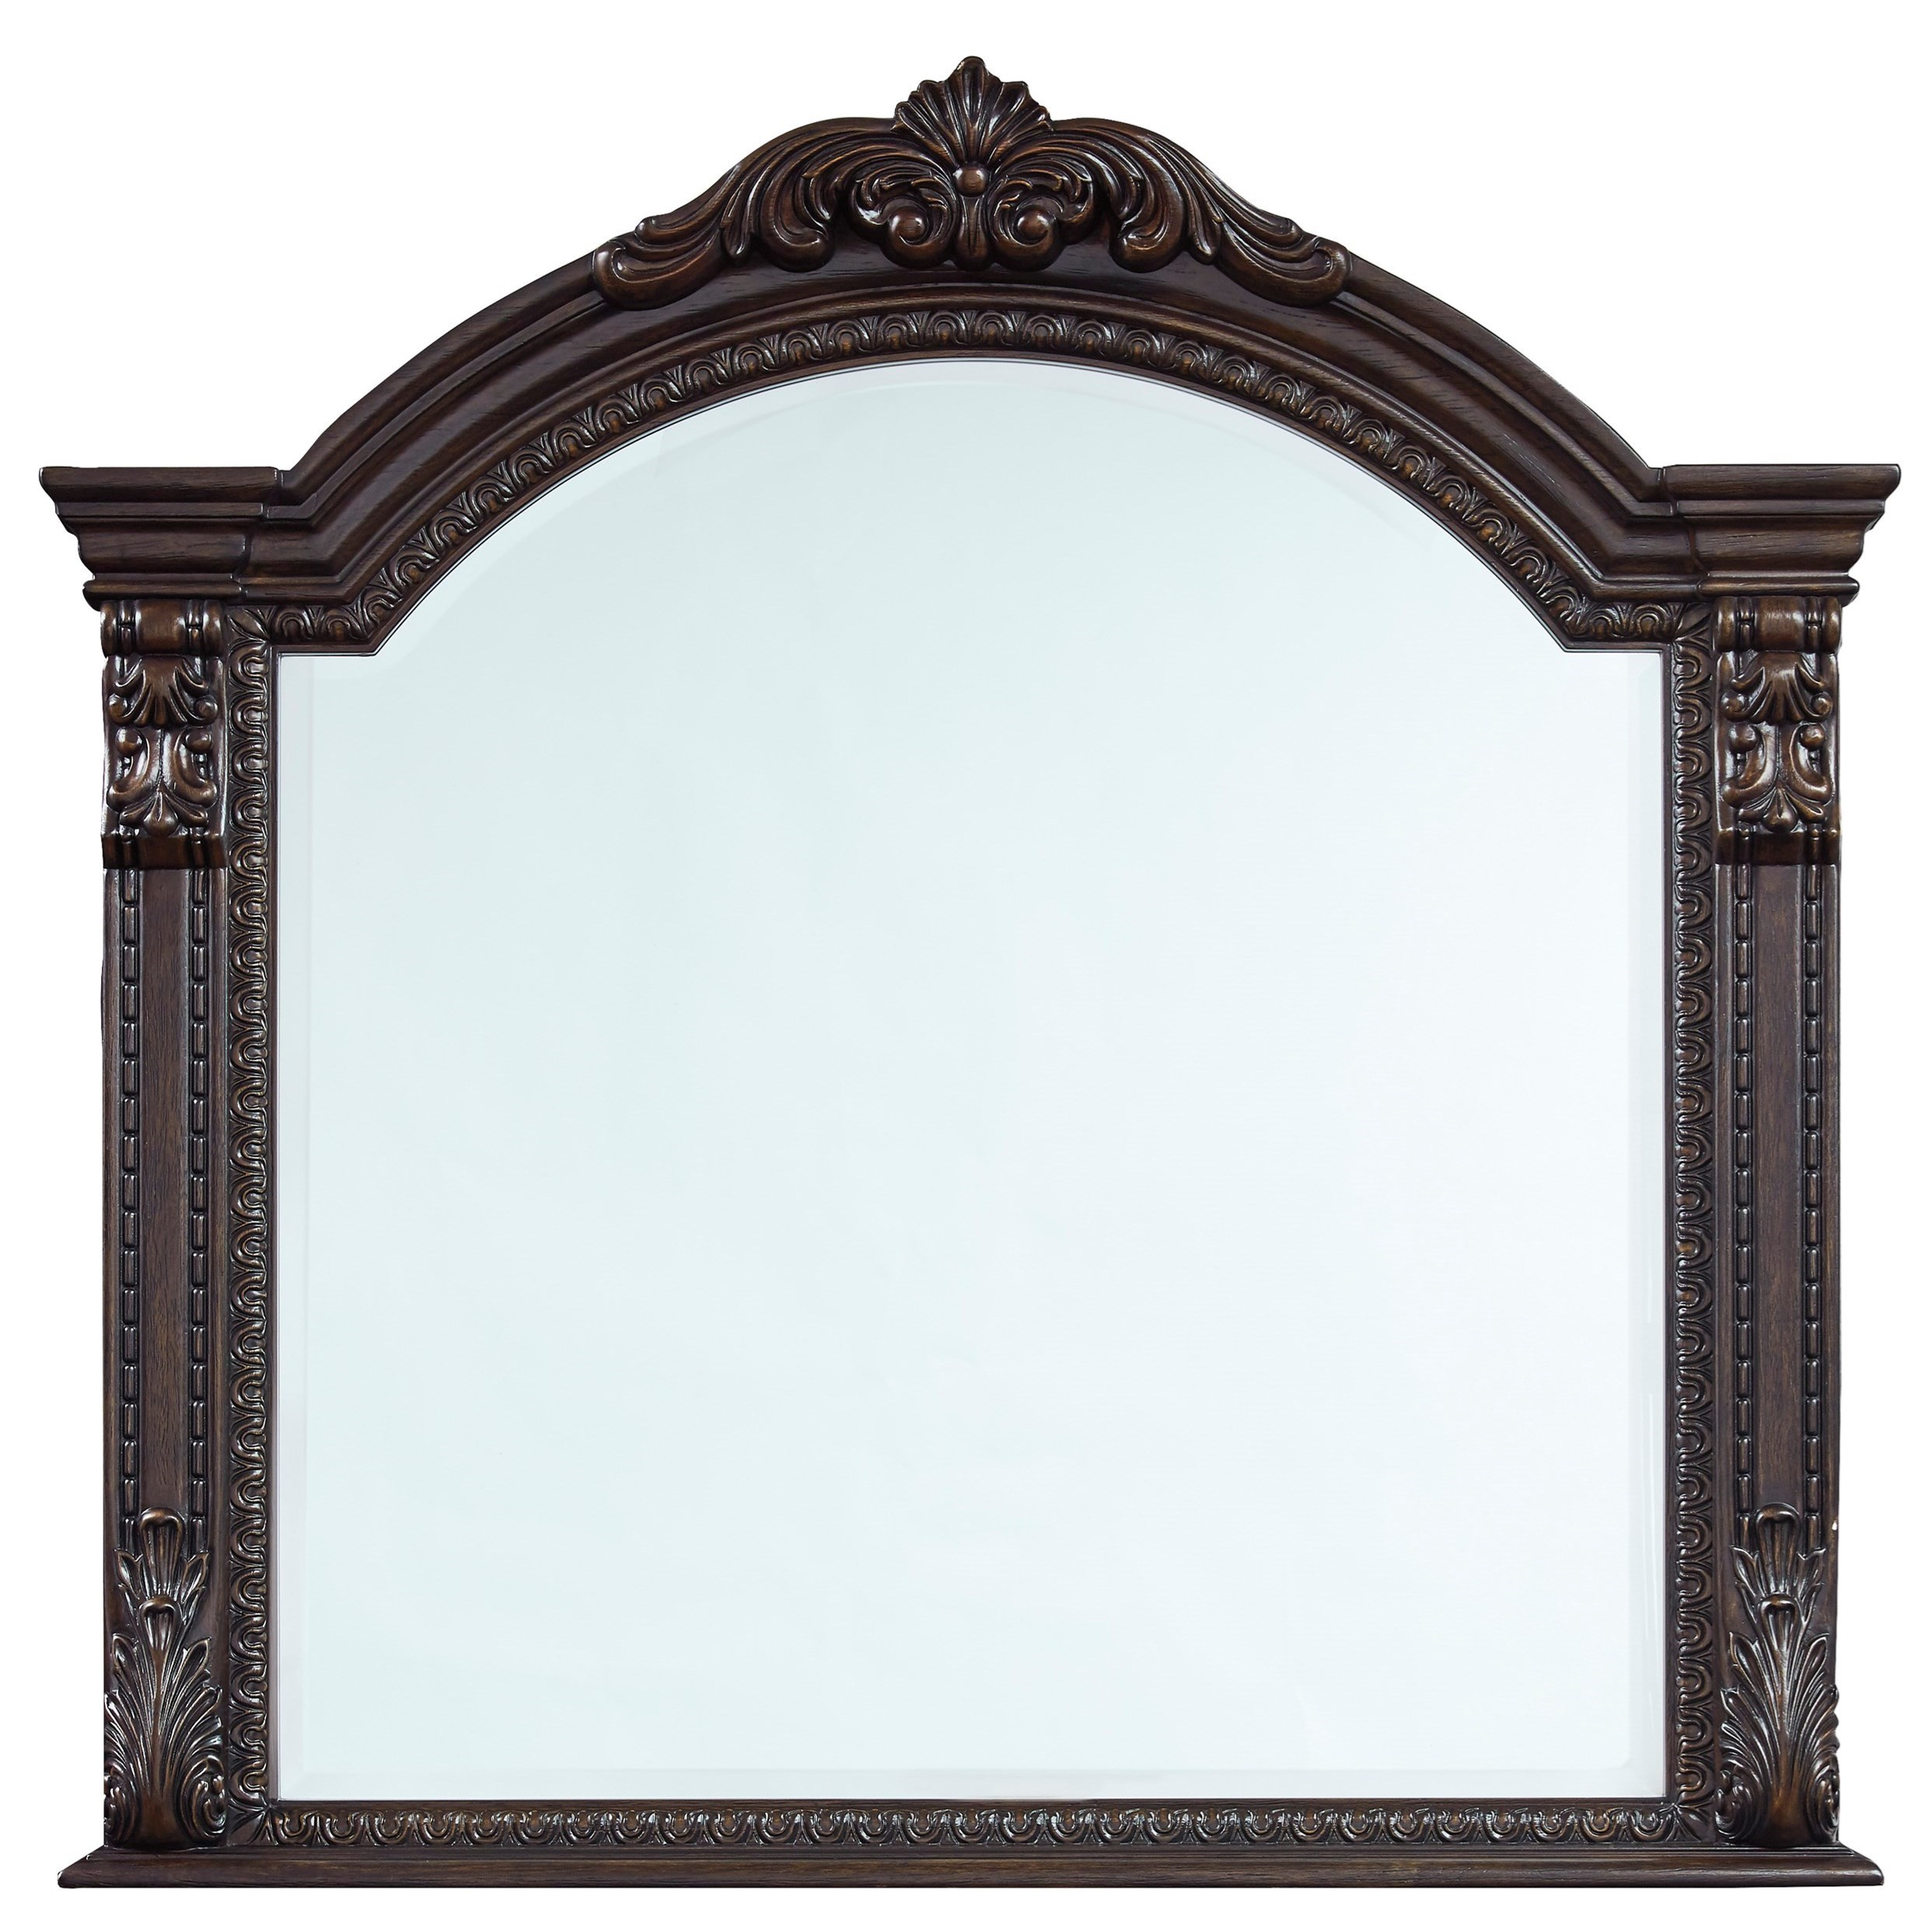 Winston Bedroom Mirror by Signature Design by Ashley at Rotmans